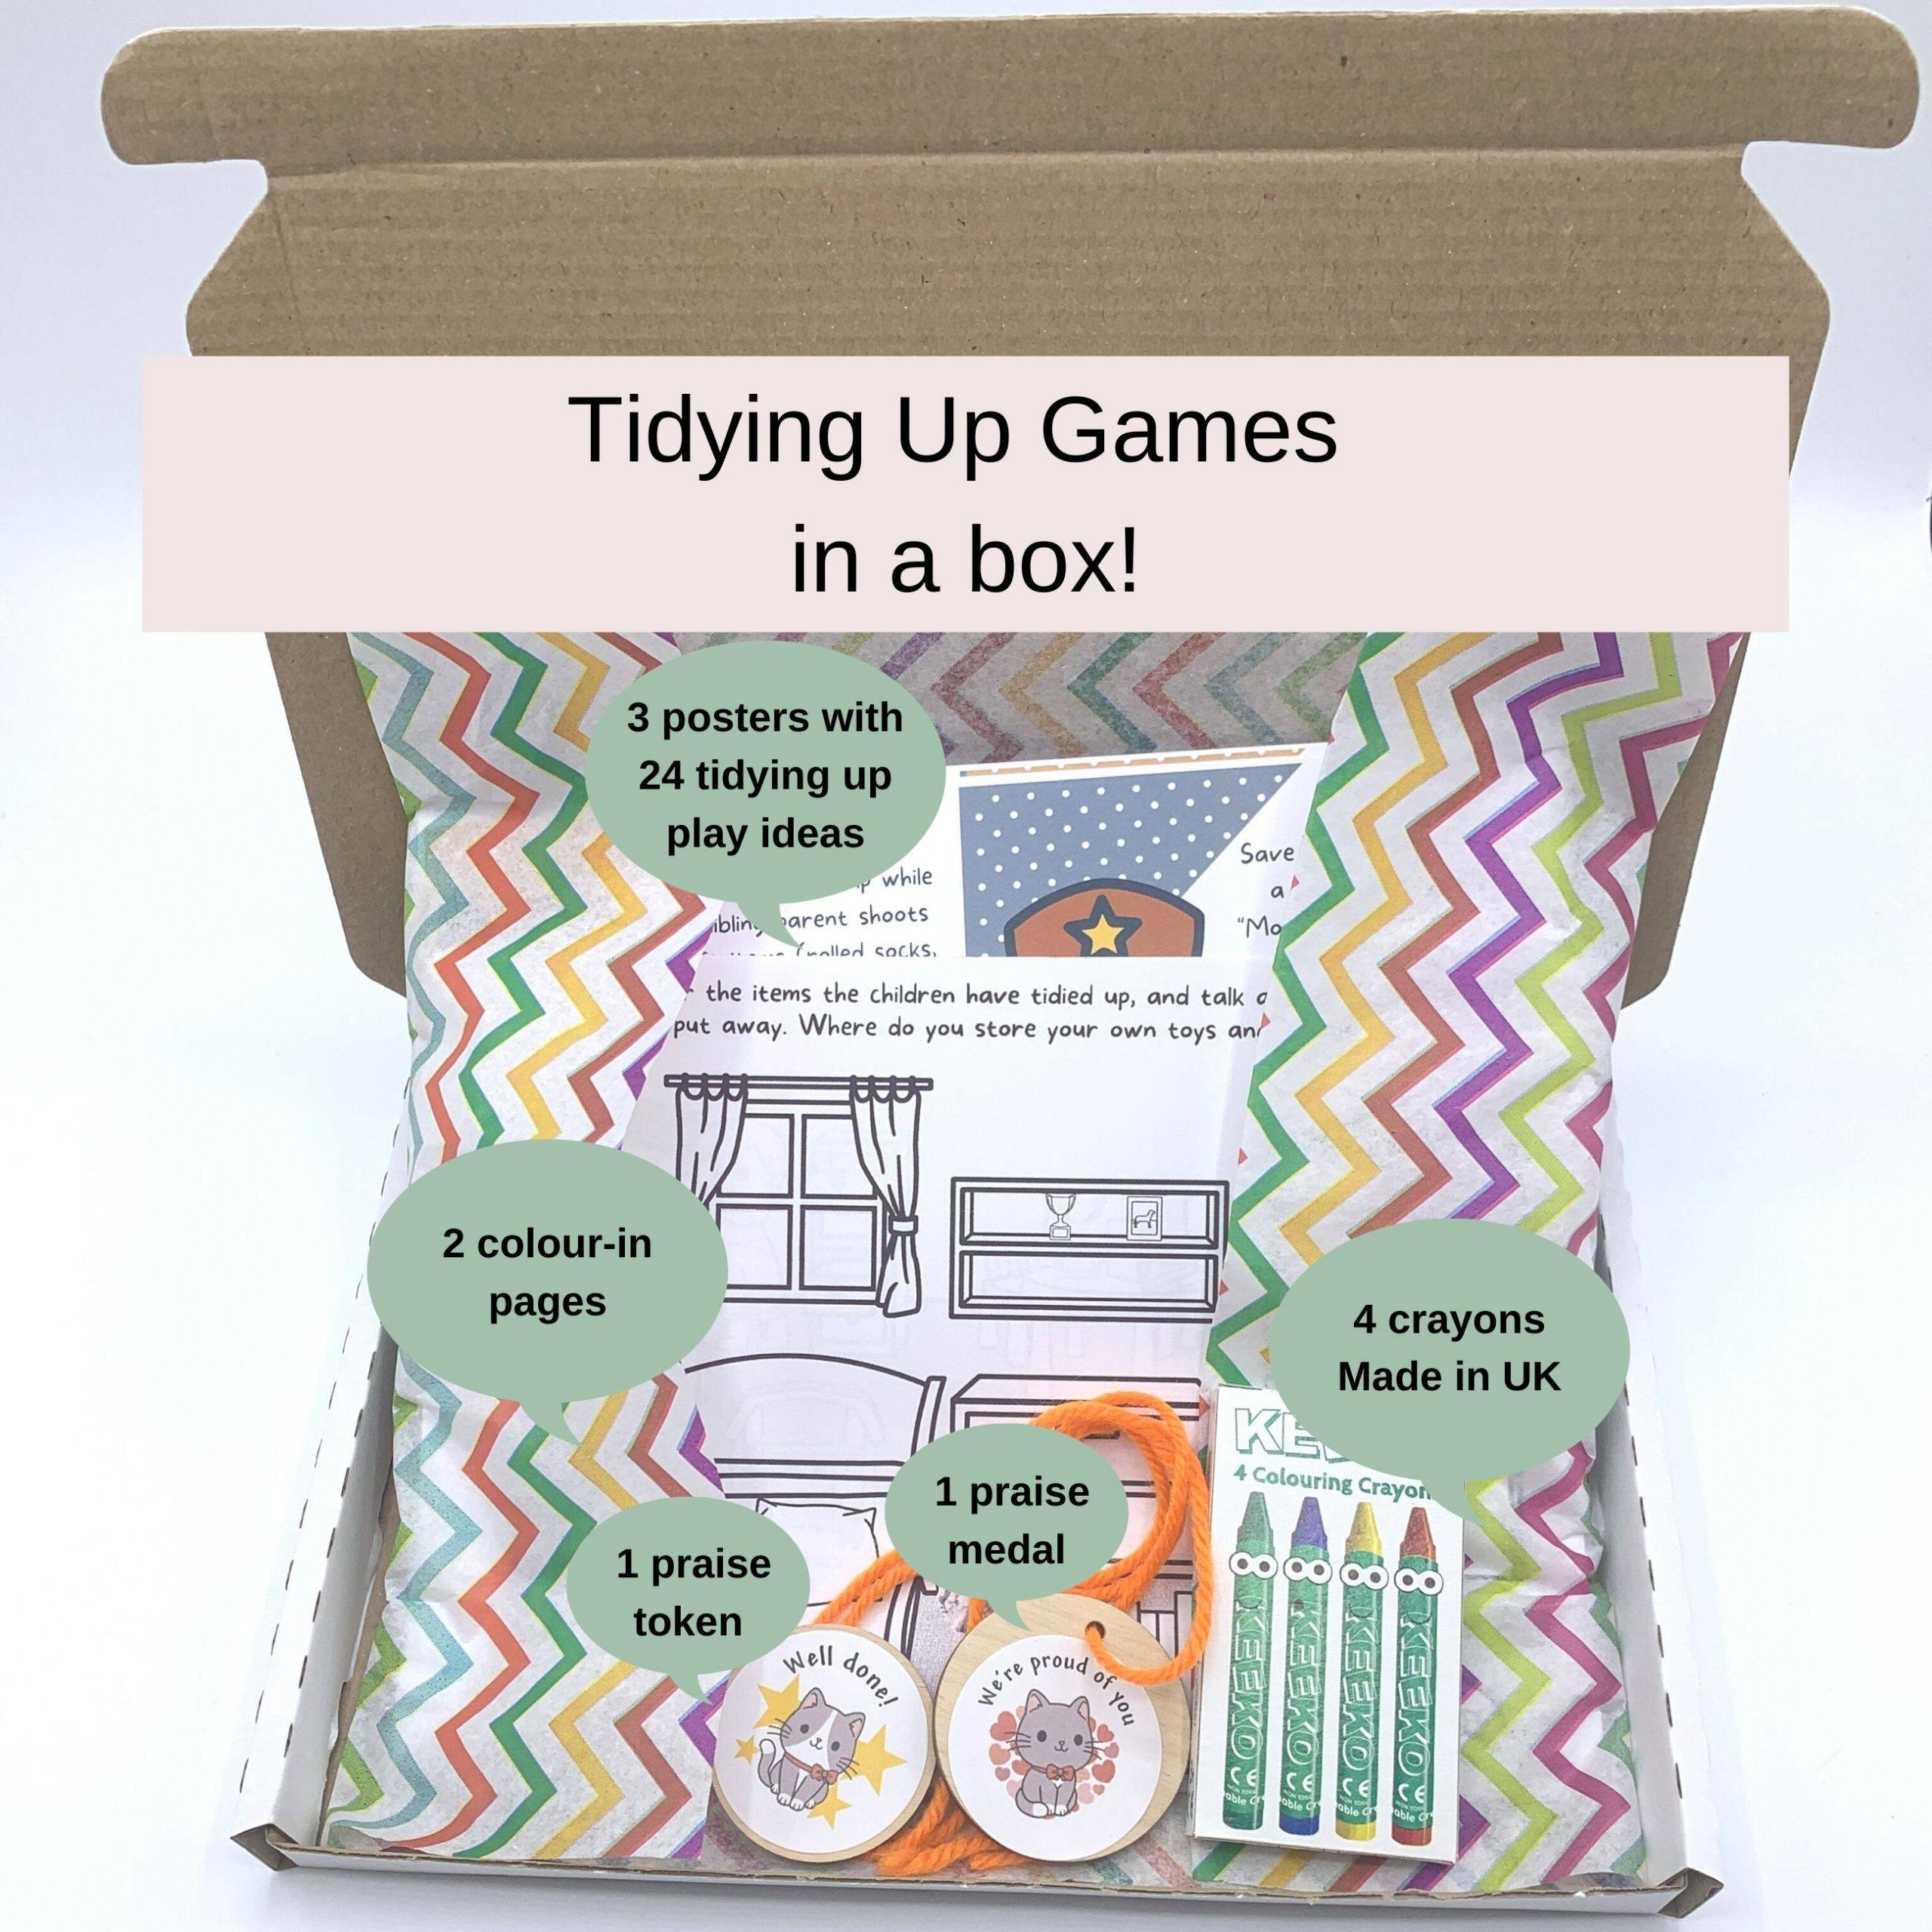 Tidying Up Games